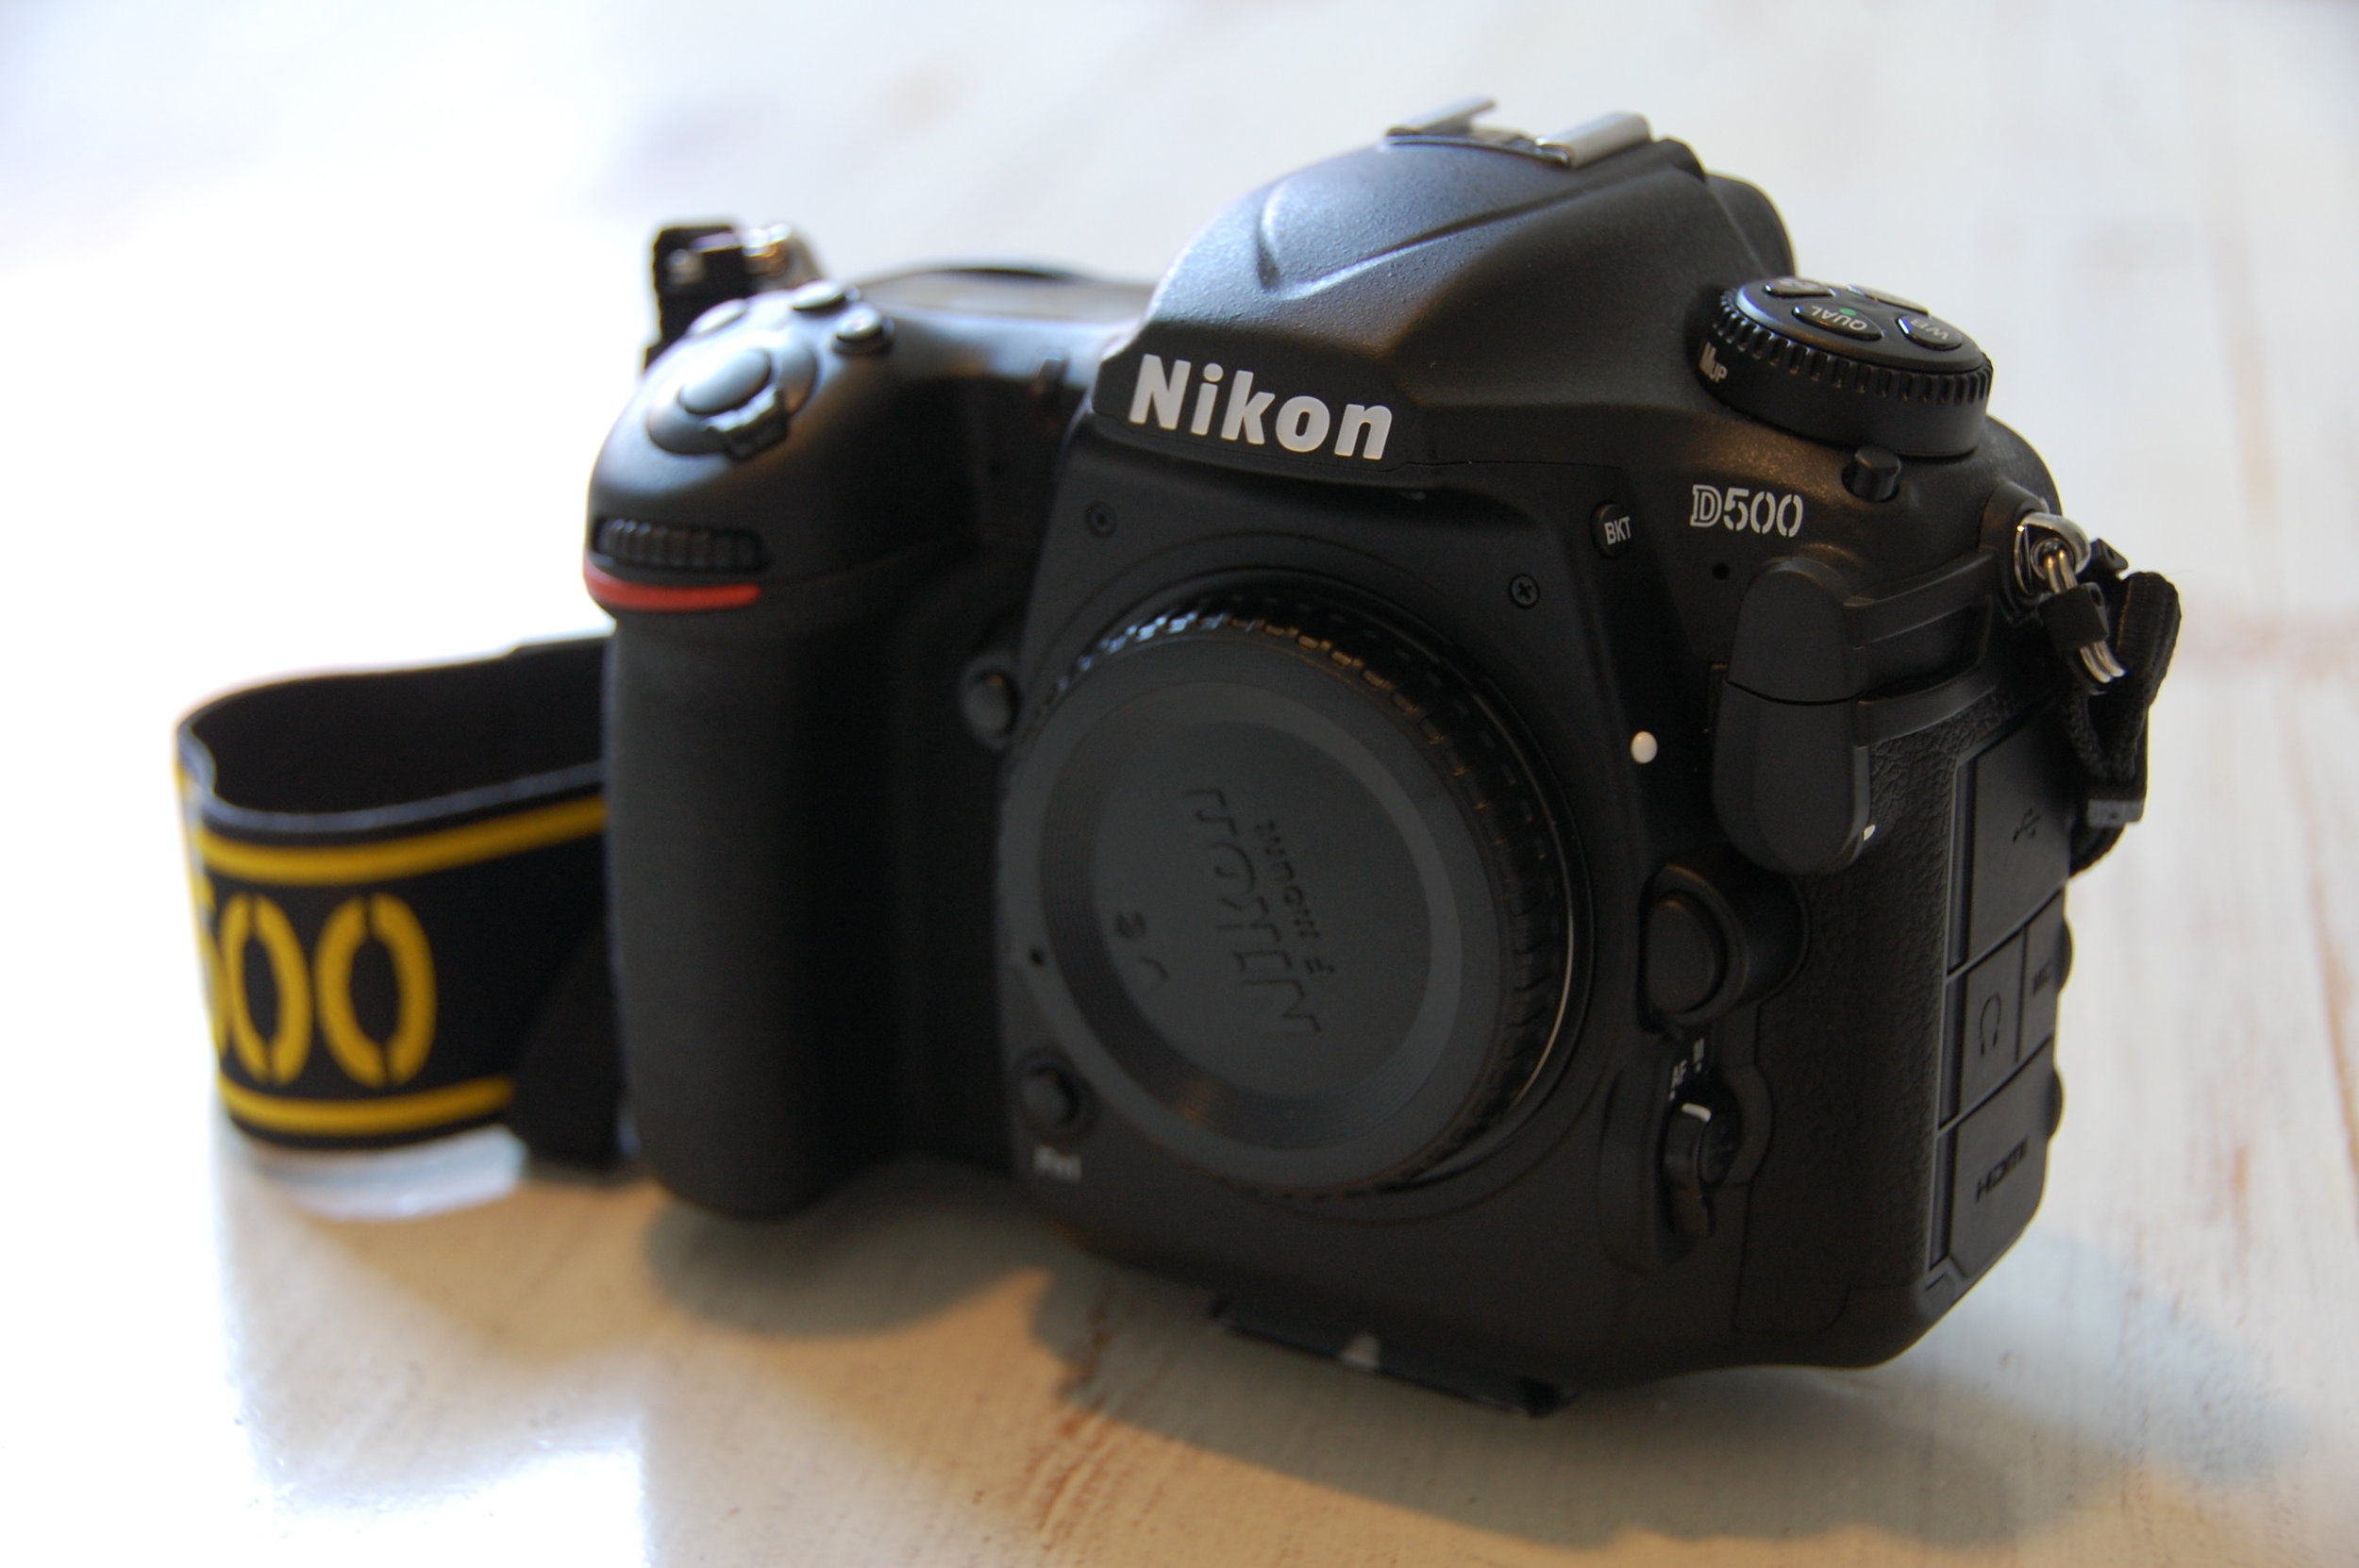 My new camera, the Nikon D500. a true masterpiece. FX quality camera in a DX format body.